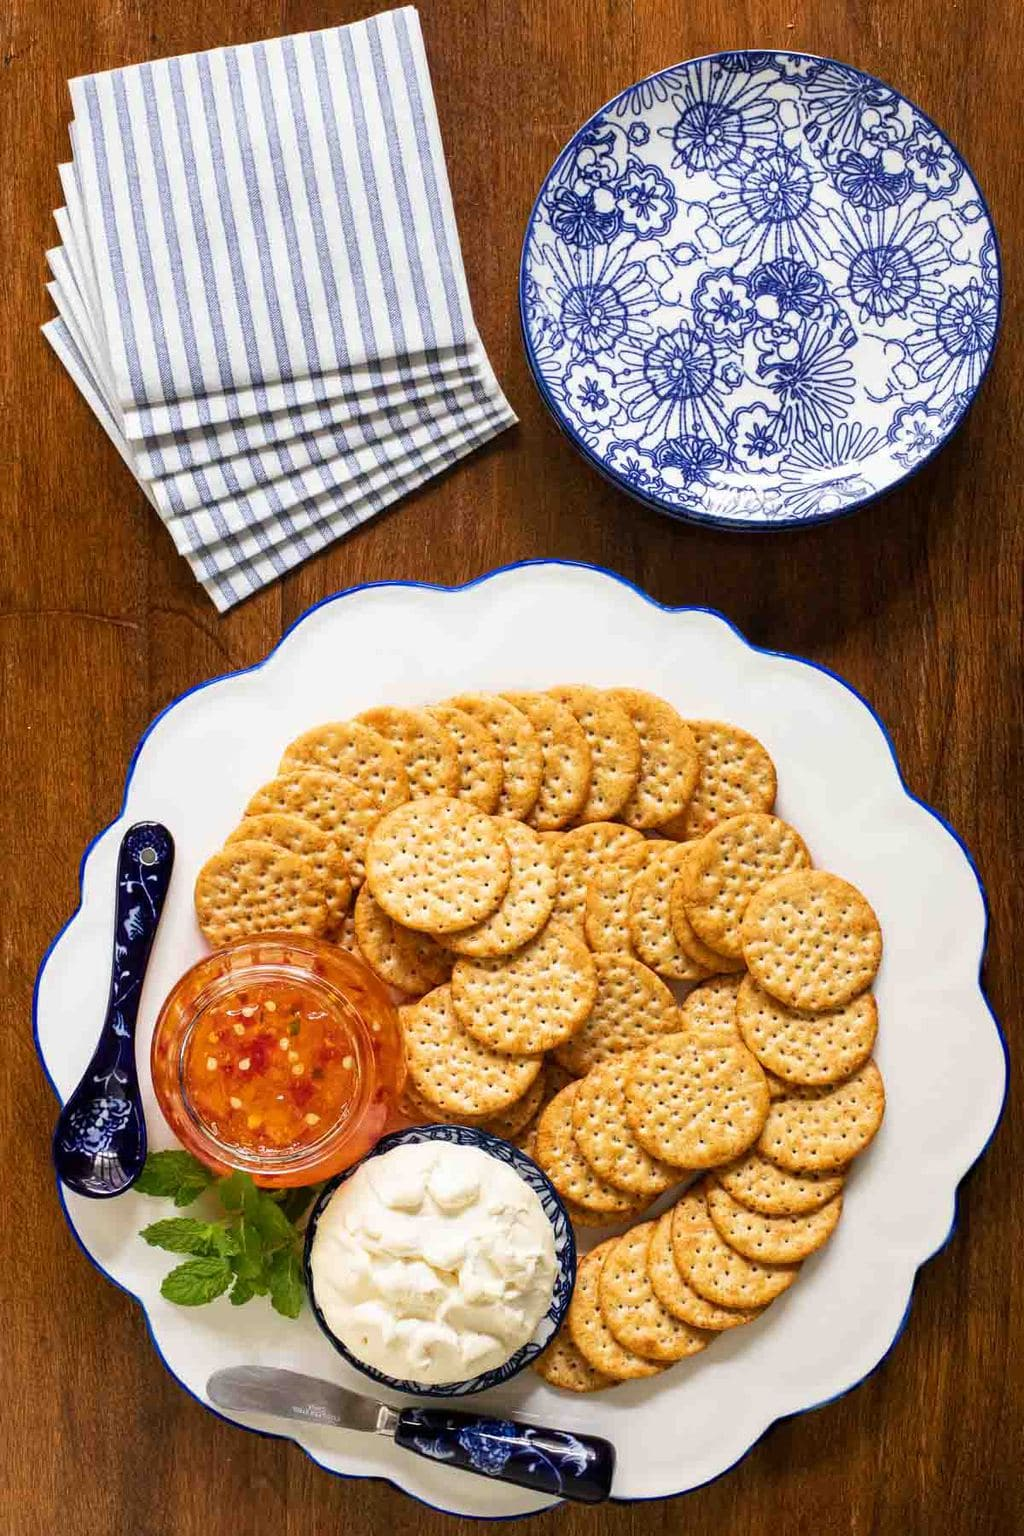 Overhead photo of an appetizer plate filled with crackers and featuring a jar of Mango Jalapeño Pepper Jelly.